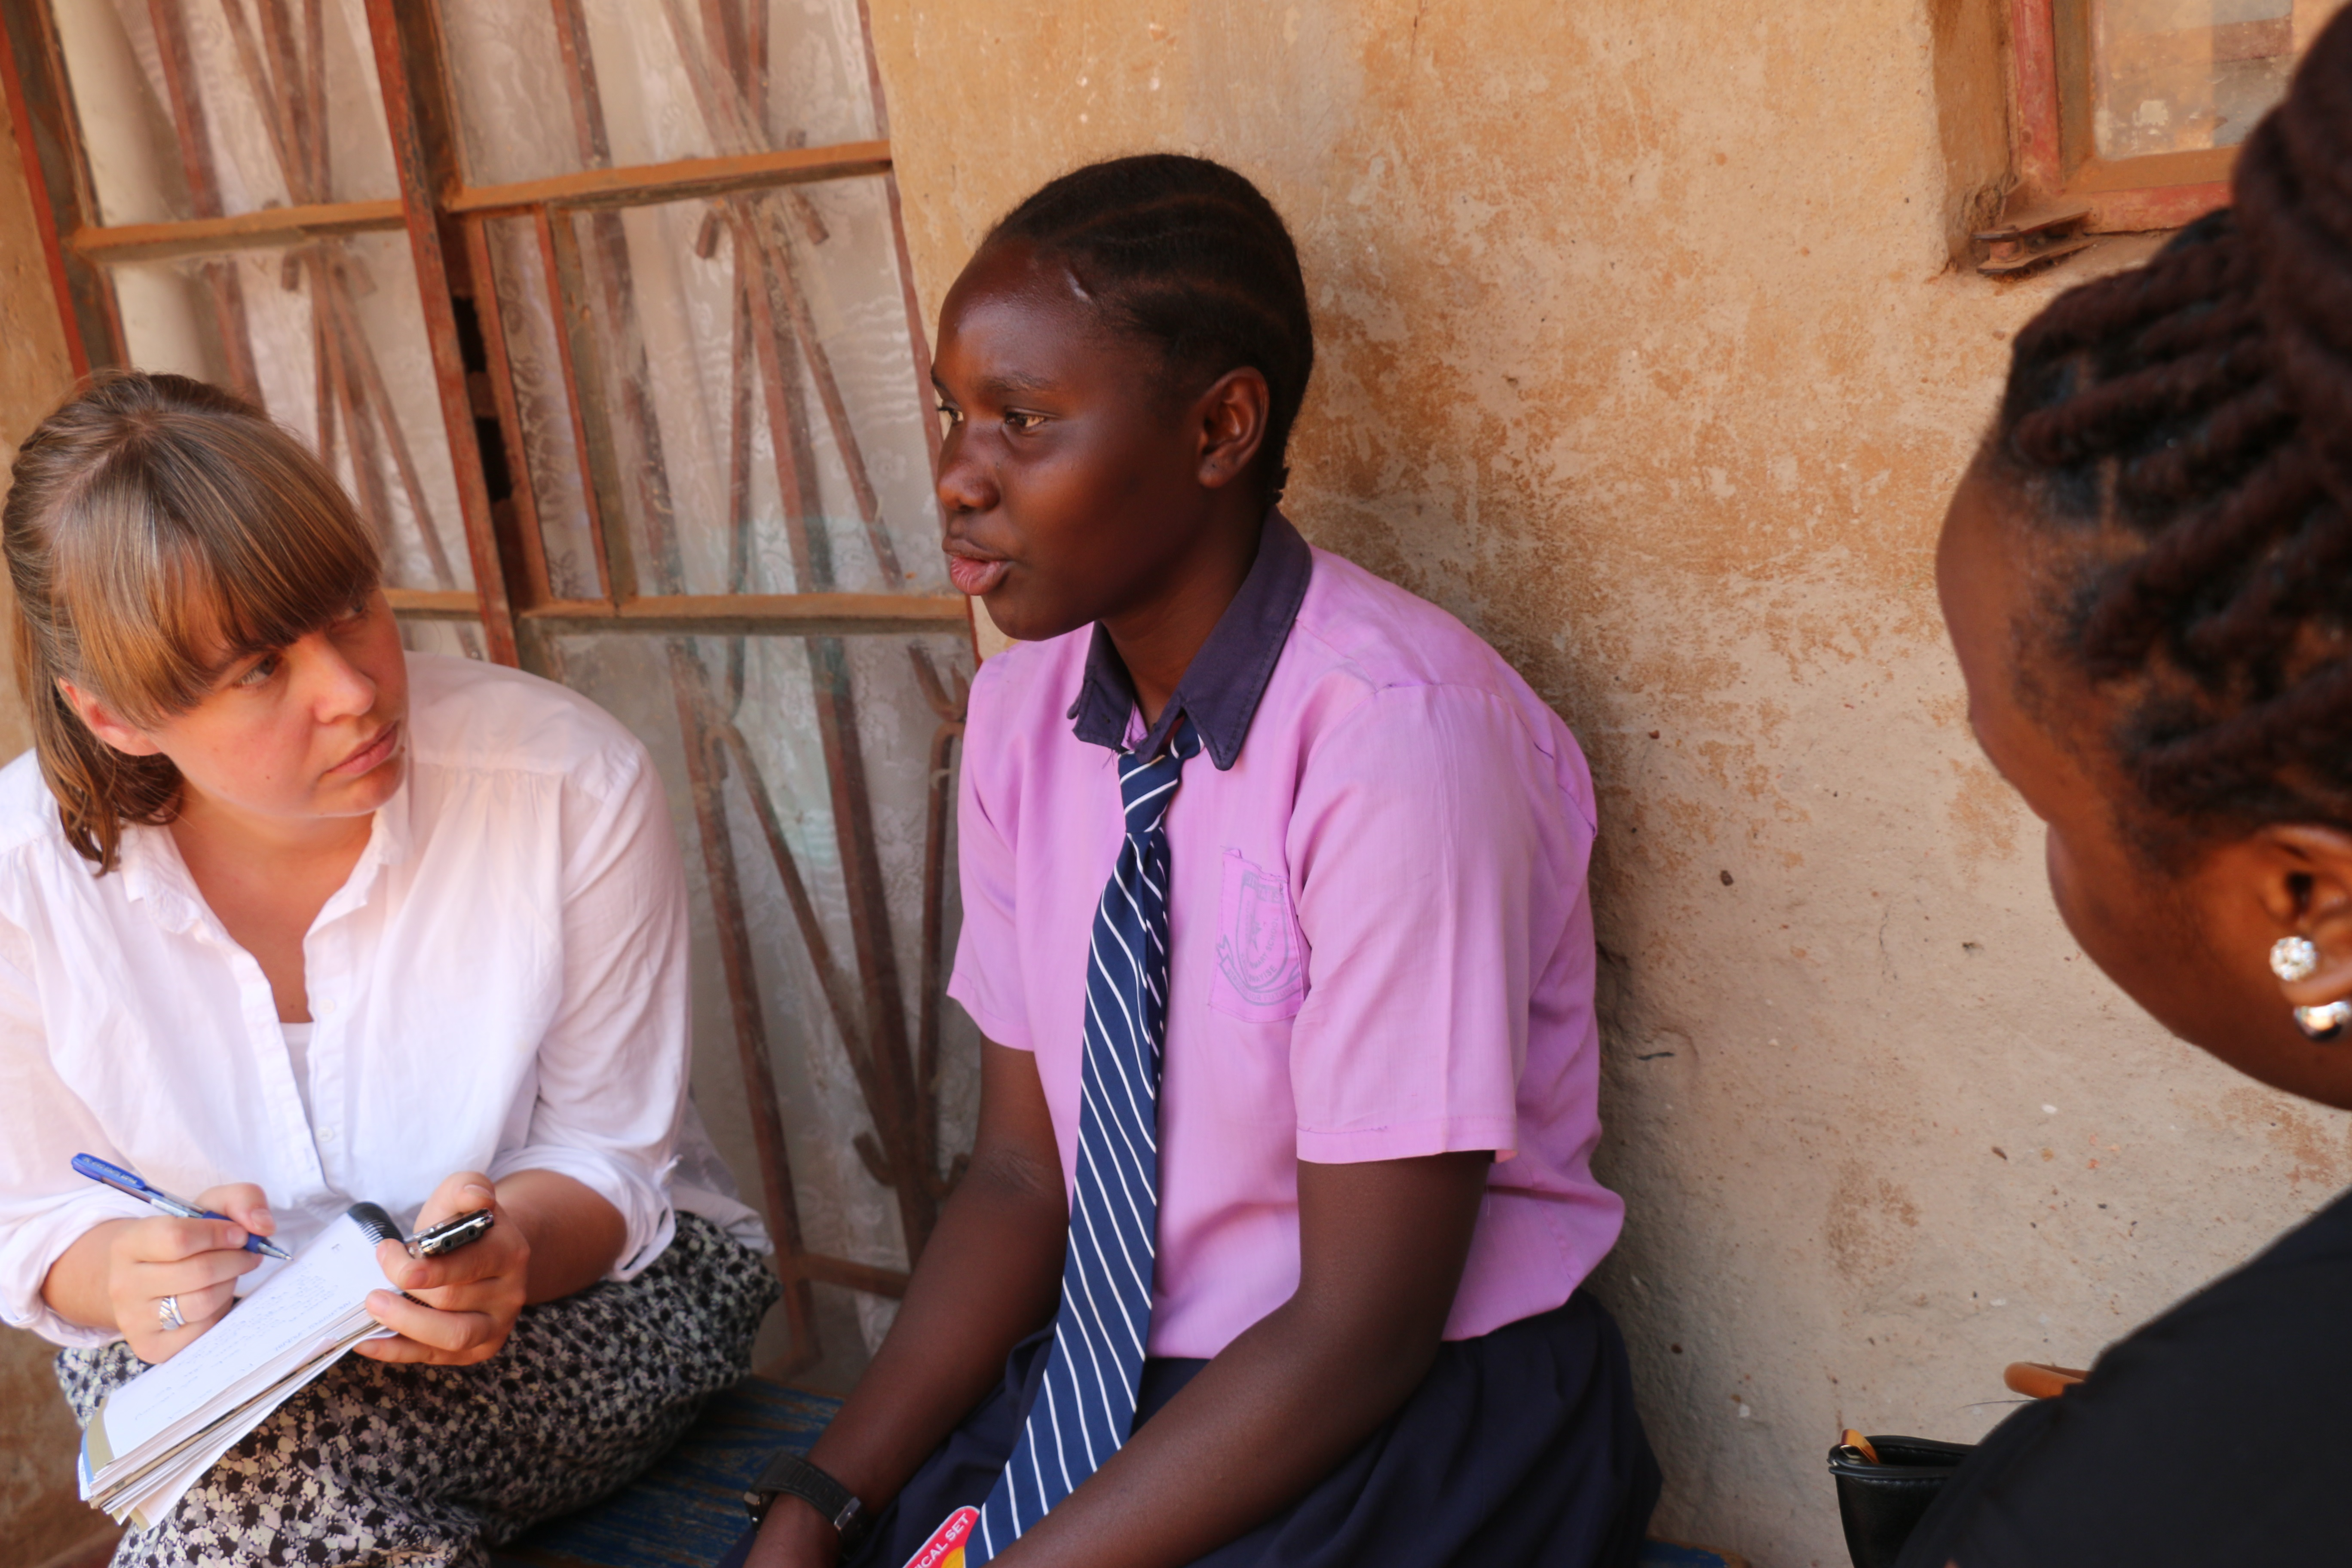 Author Anna Dahlqvist talking with Saudah, a teenager in Kampala, Uganda